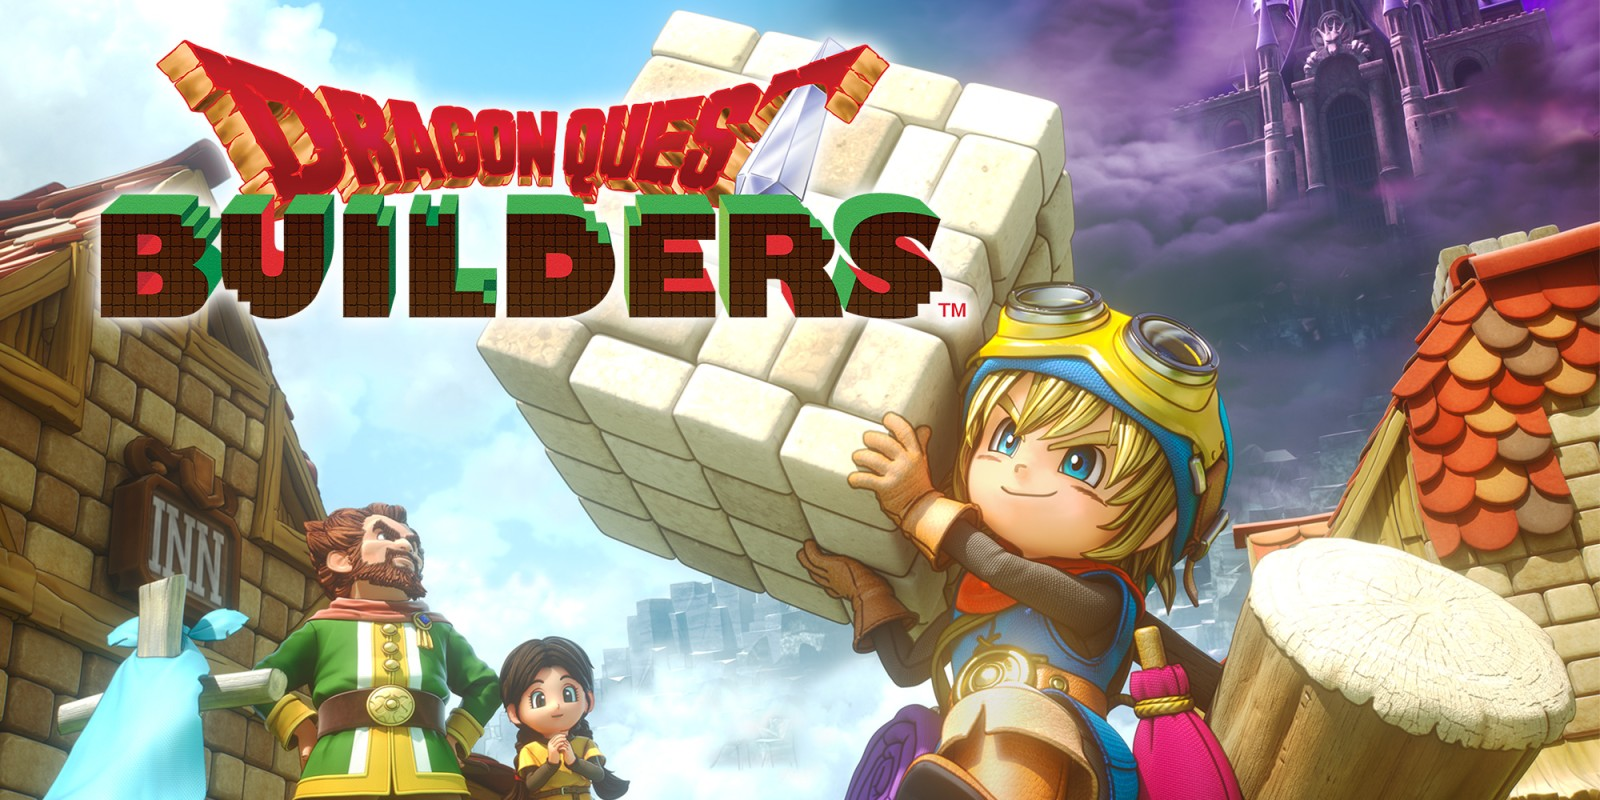 H2x1_NSwitch_DragonQuestBuilders_image16